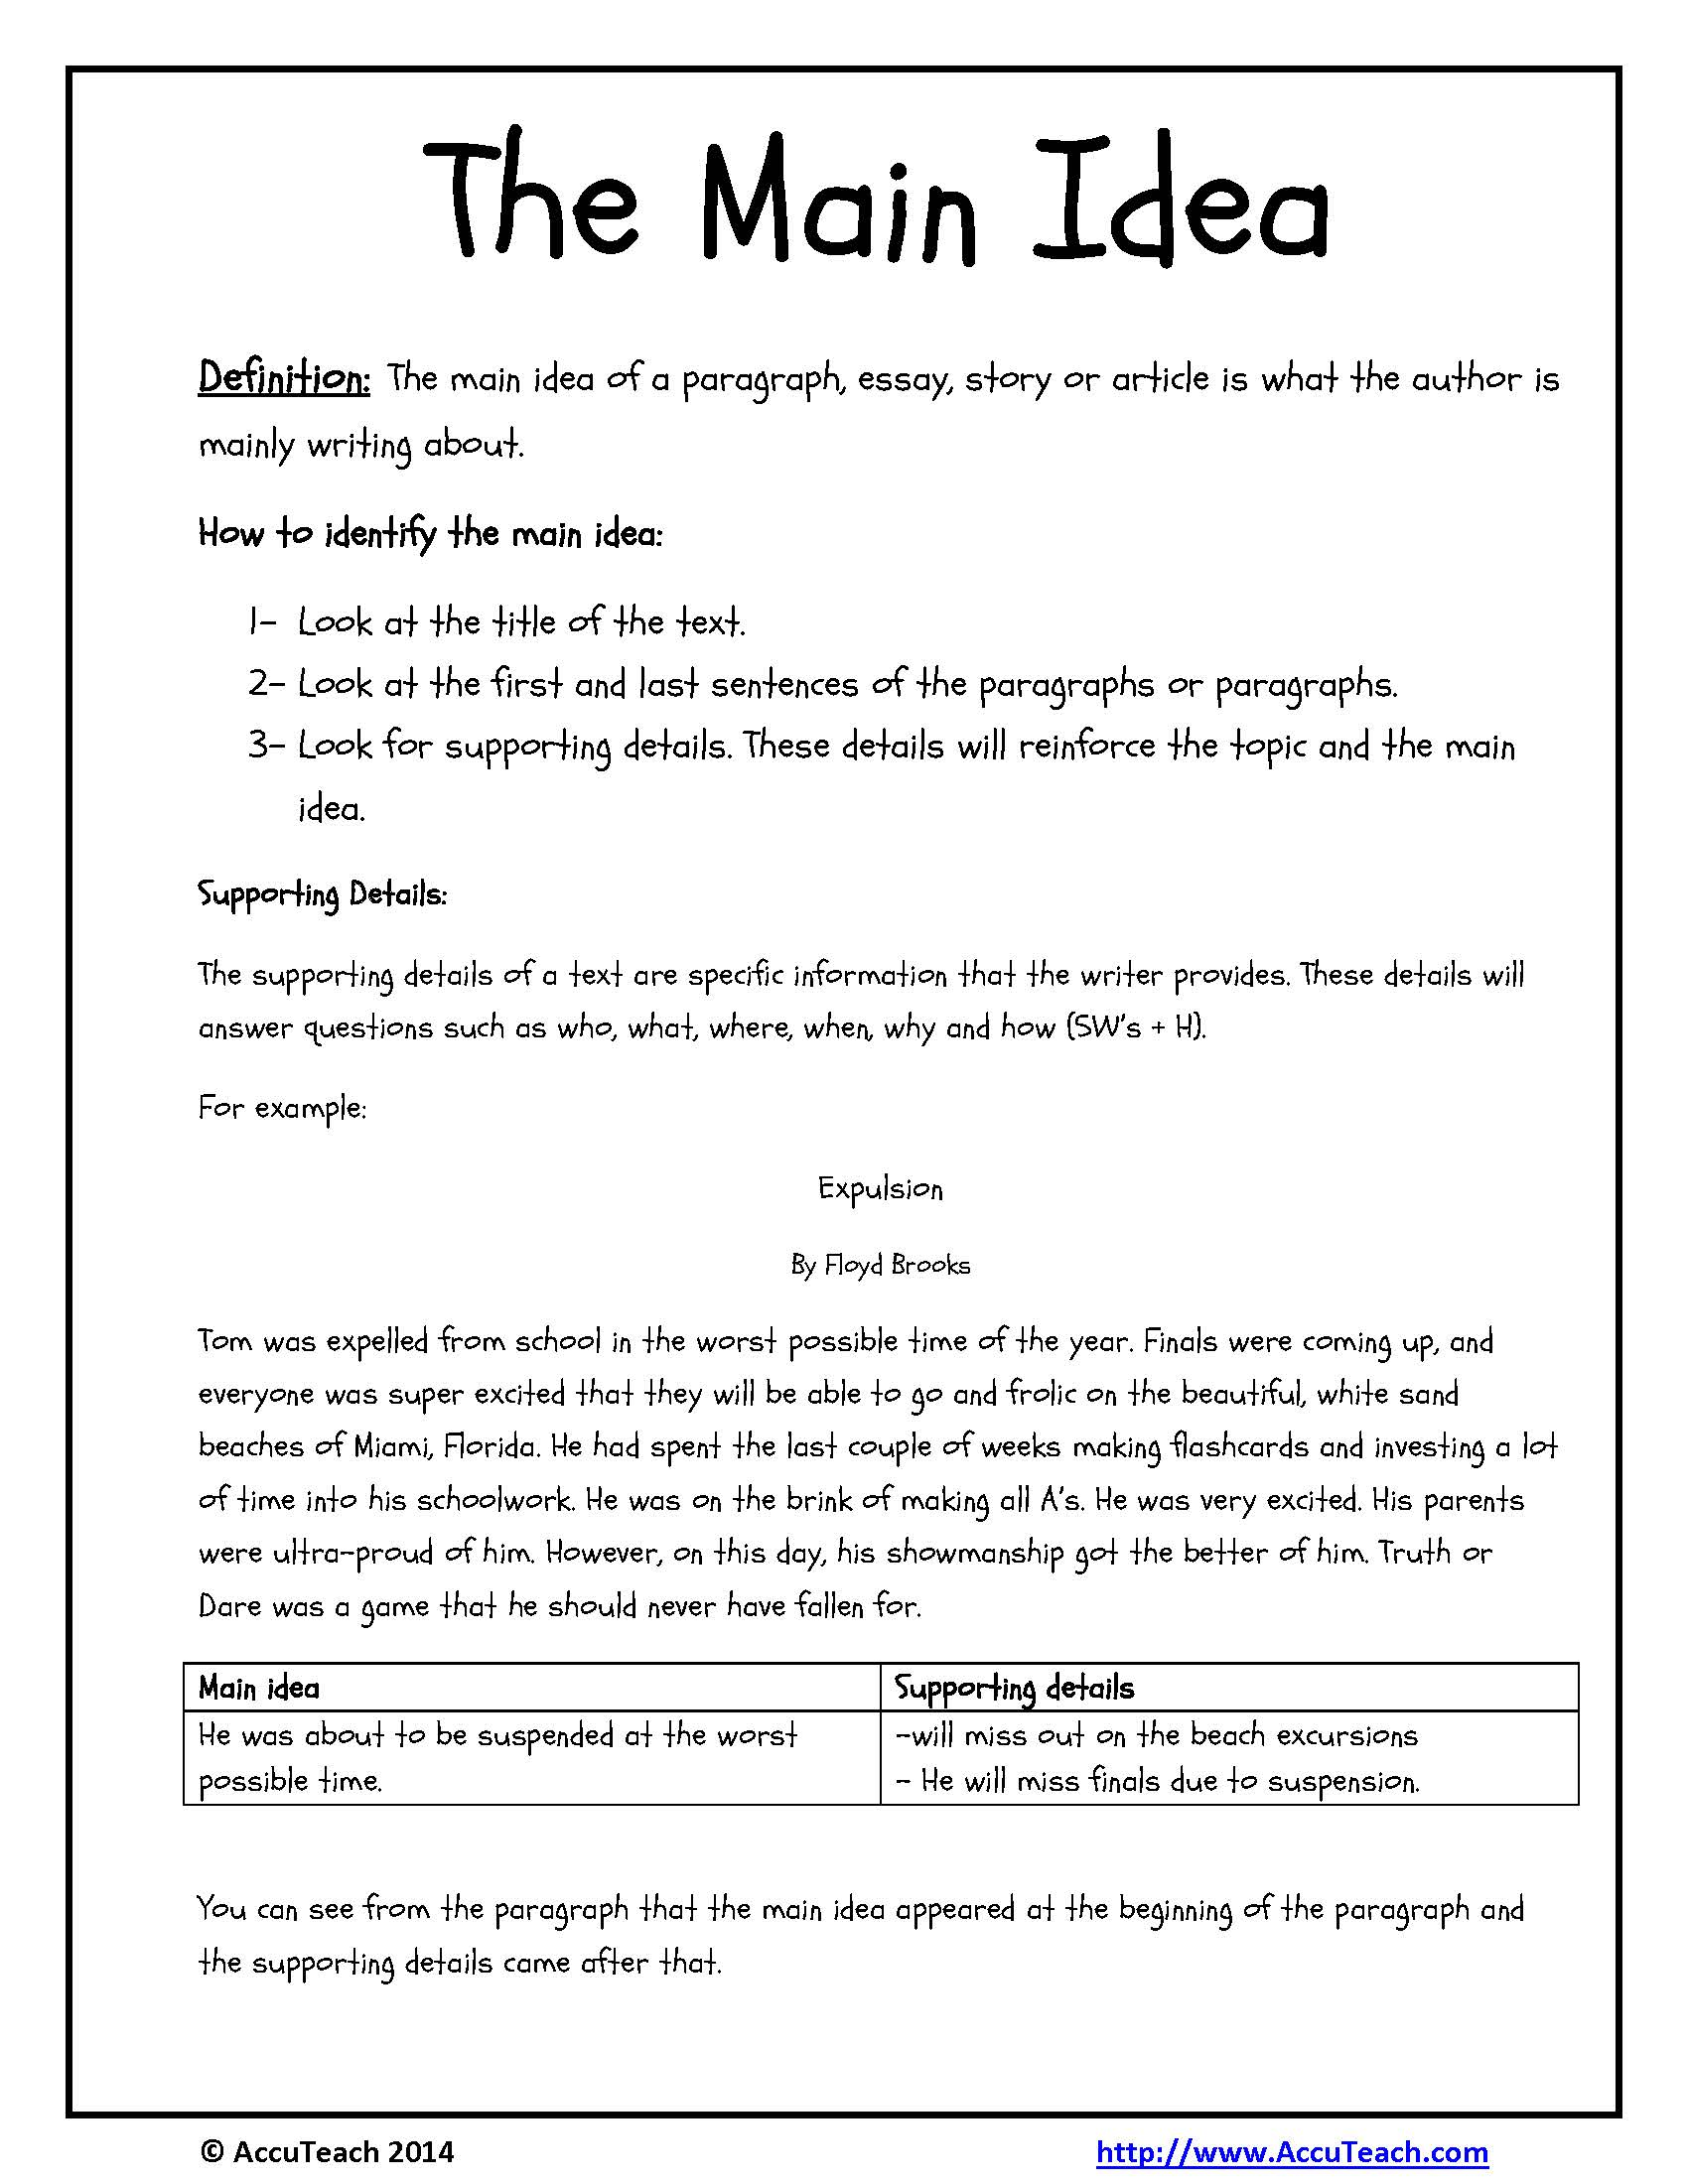 worksheet Free Main Idea Worksheets main idea and supporting details worksheets 3rd grade free on for grade